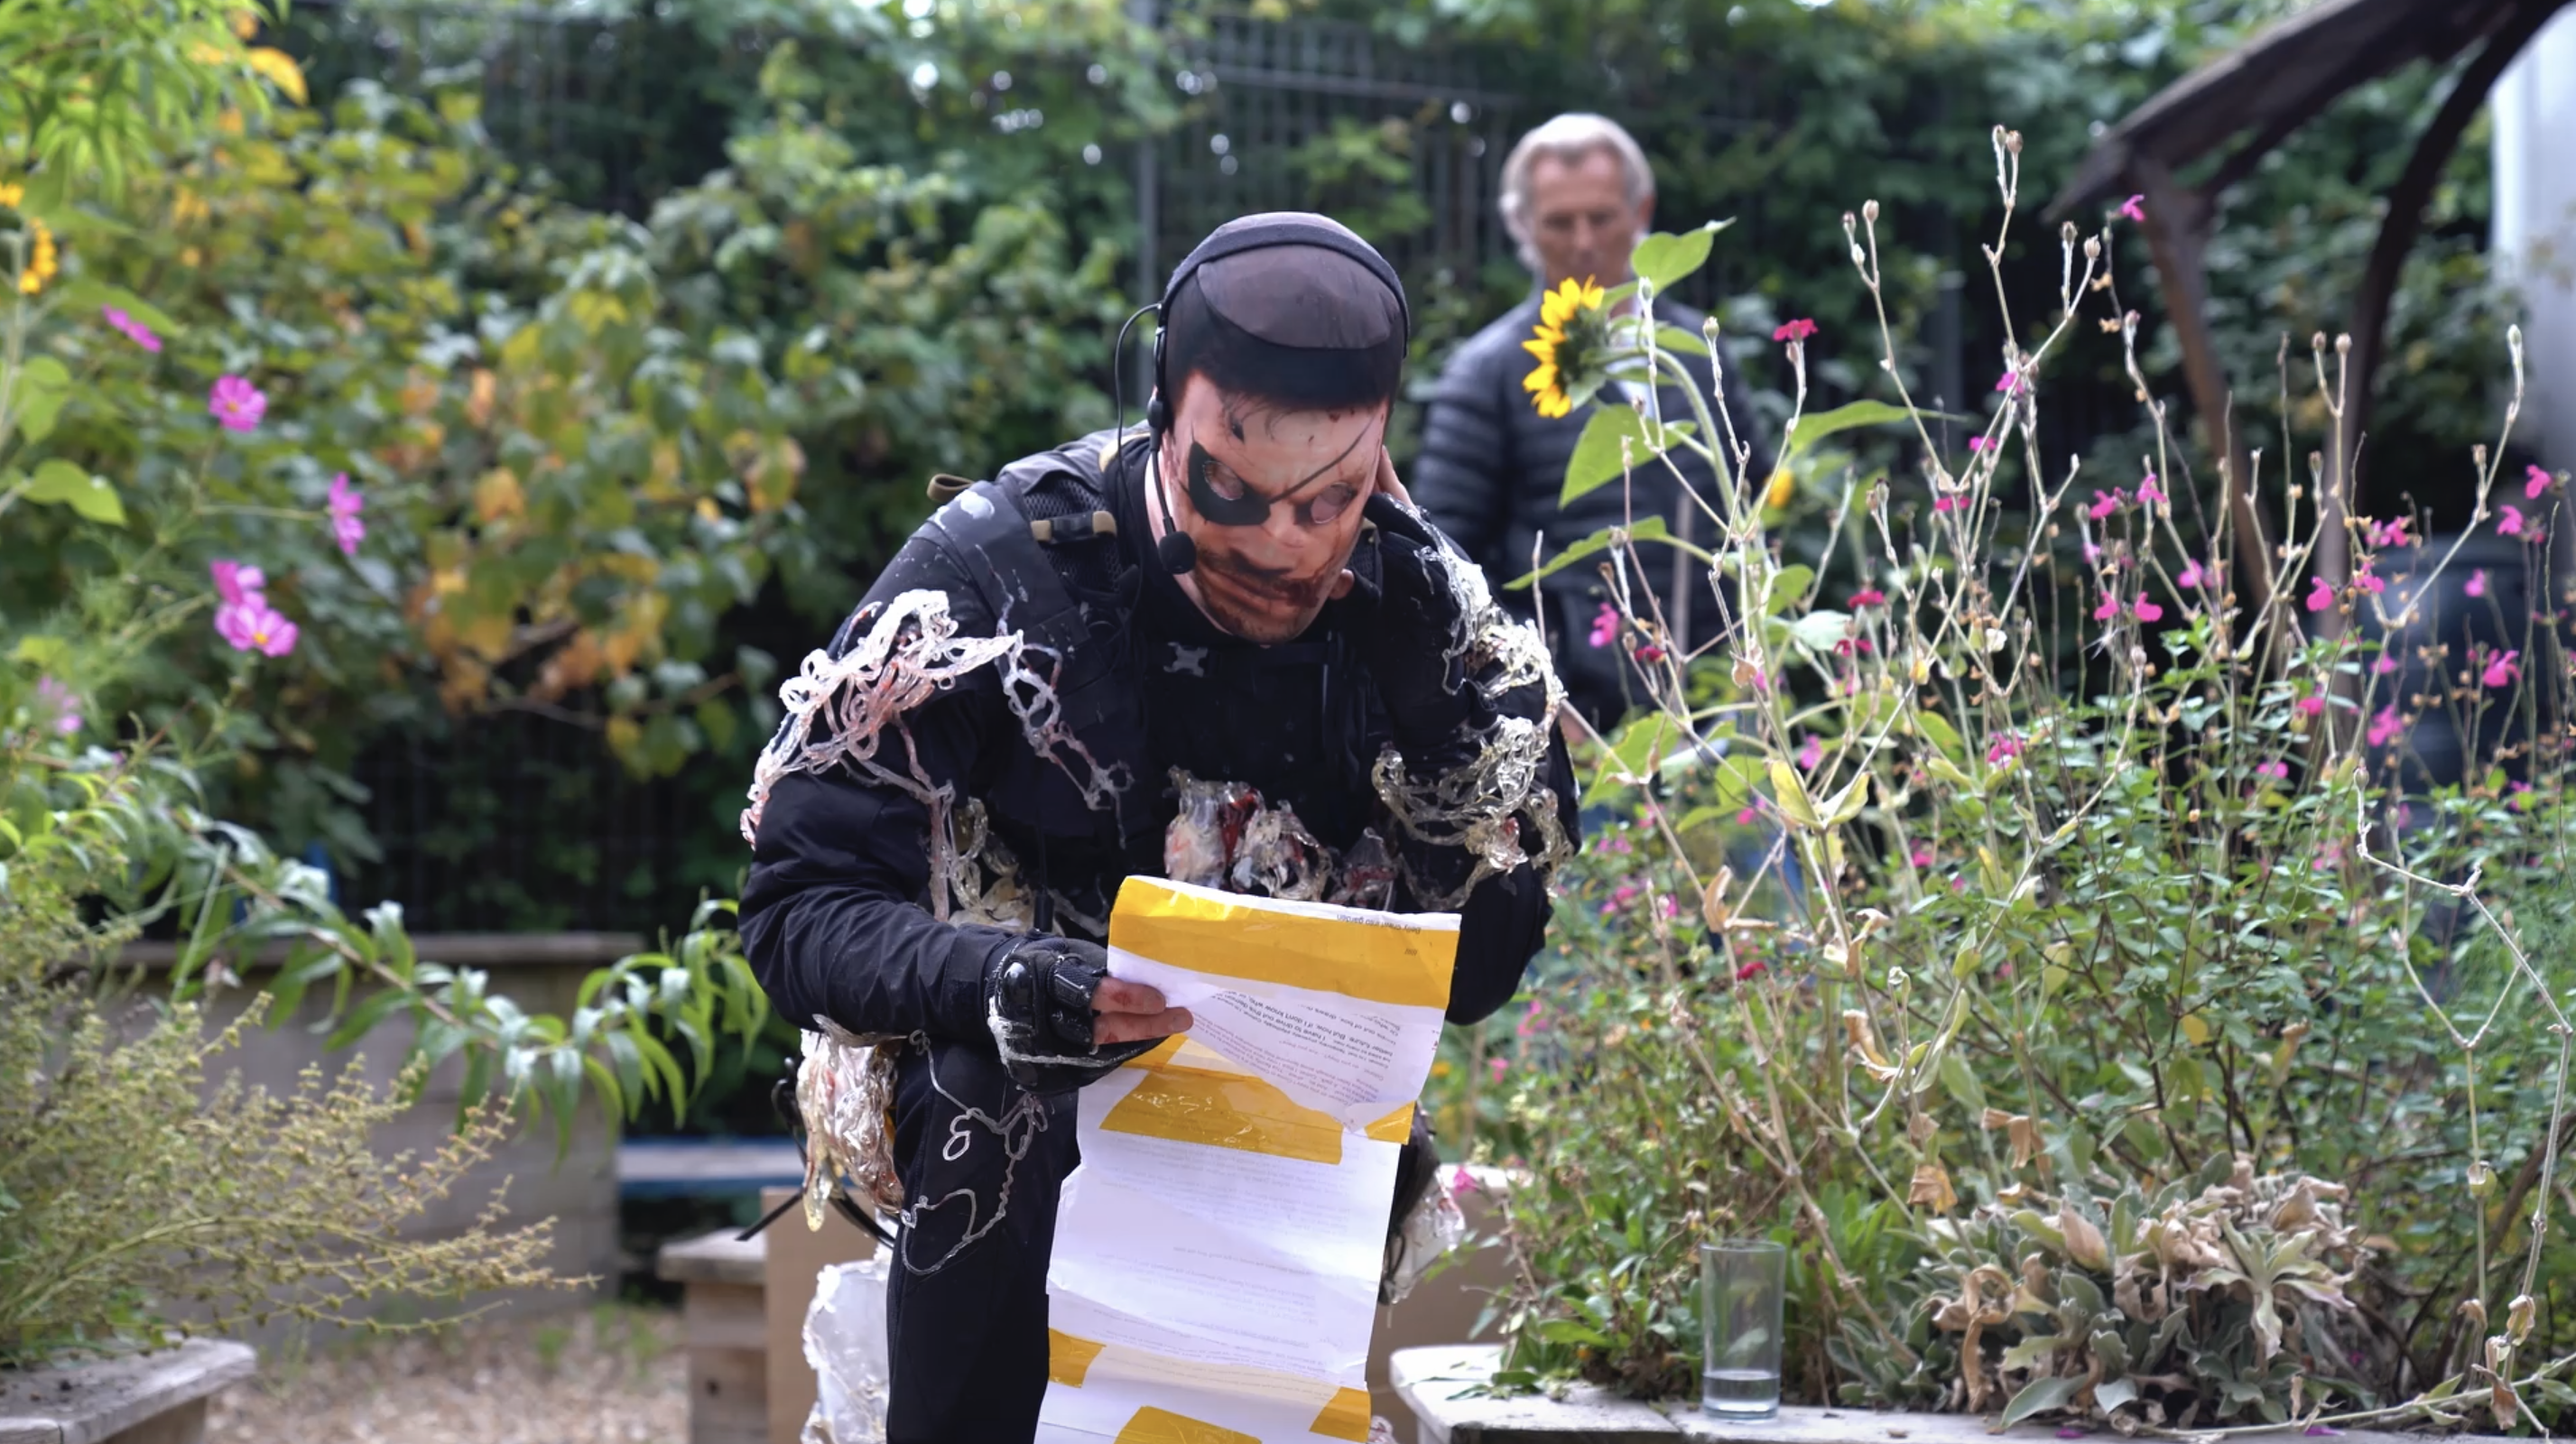 A man wearing tactical military gear kneels in a garden reading a script. He is covered in some kind of translucent spermatological substance and is wearing a nylon mask printed with the face of Venom Snake.